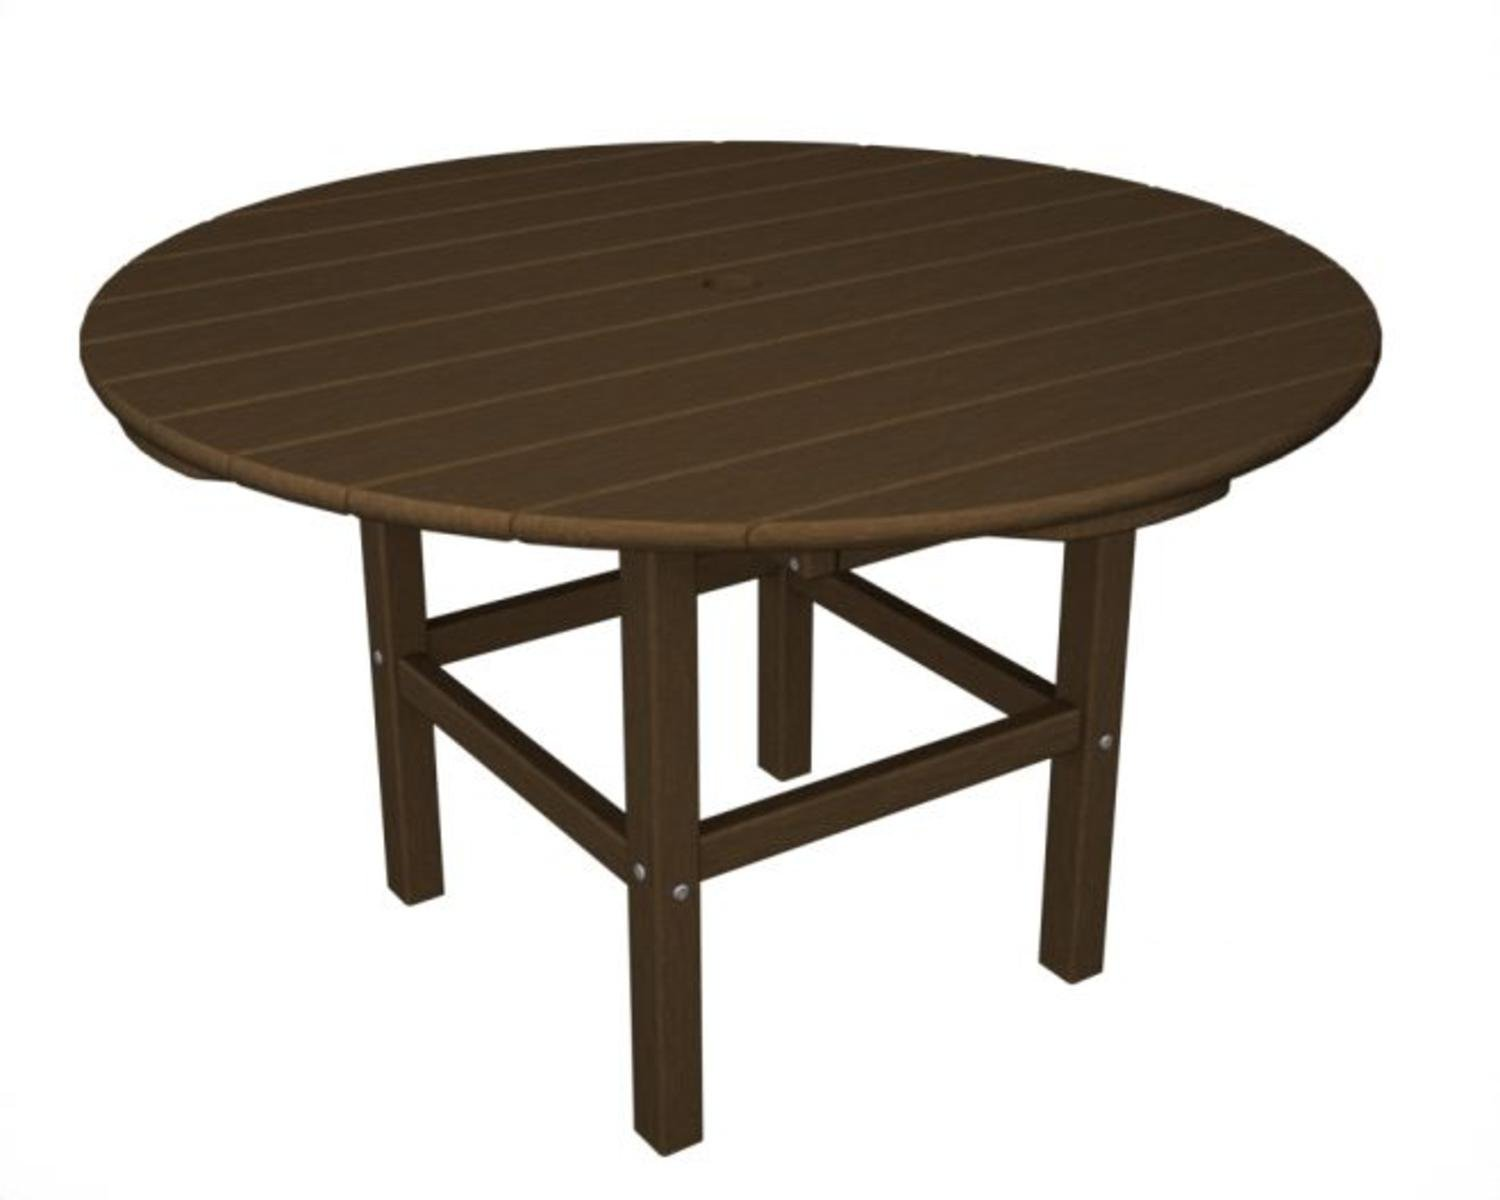 38'' Recycled Earth-Friendly Outdoor Patio Round Kid's Dining Table - Teak Brown